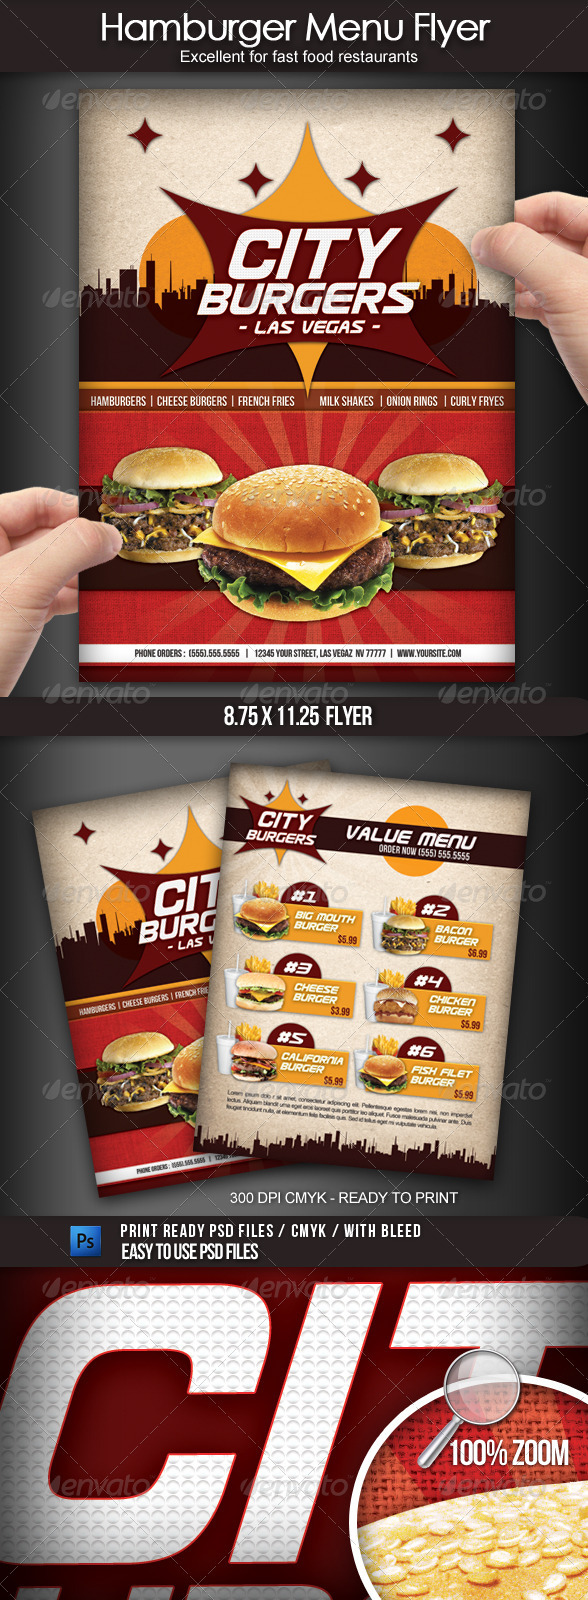 Hamburger Restaurant Menu Flyer - Restaurant Flyers